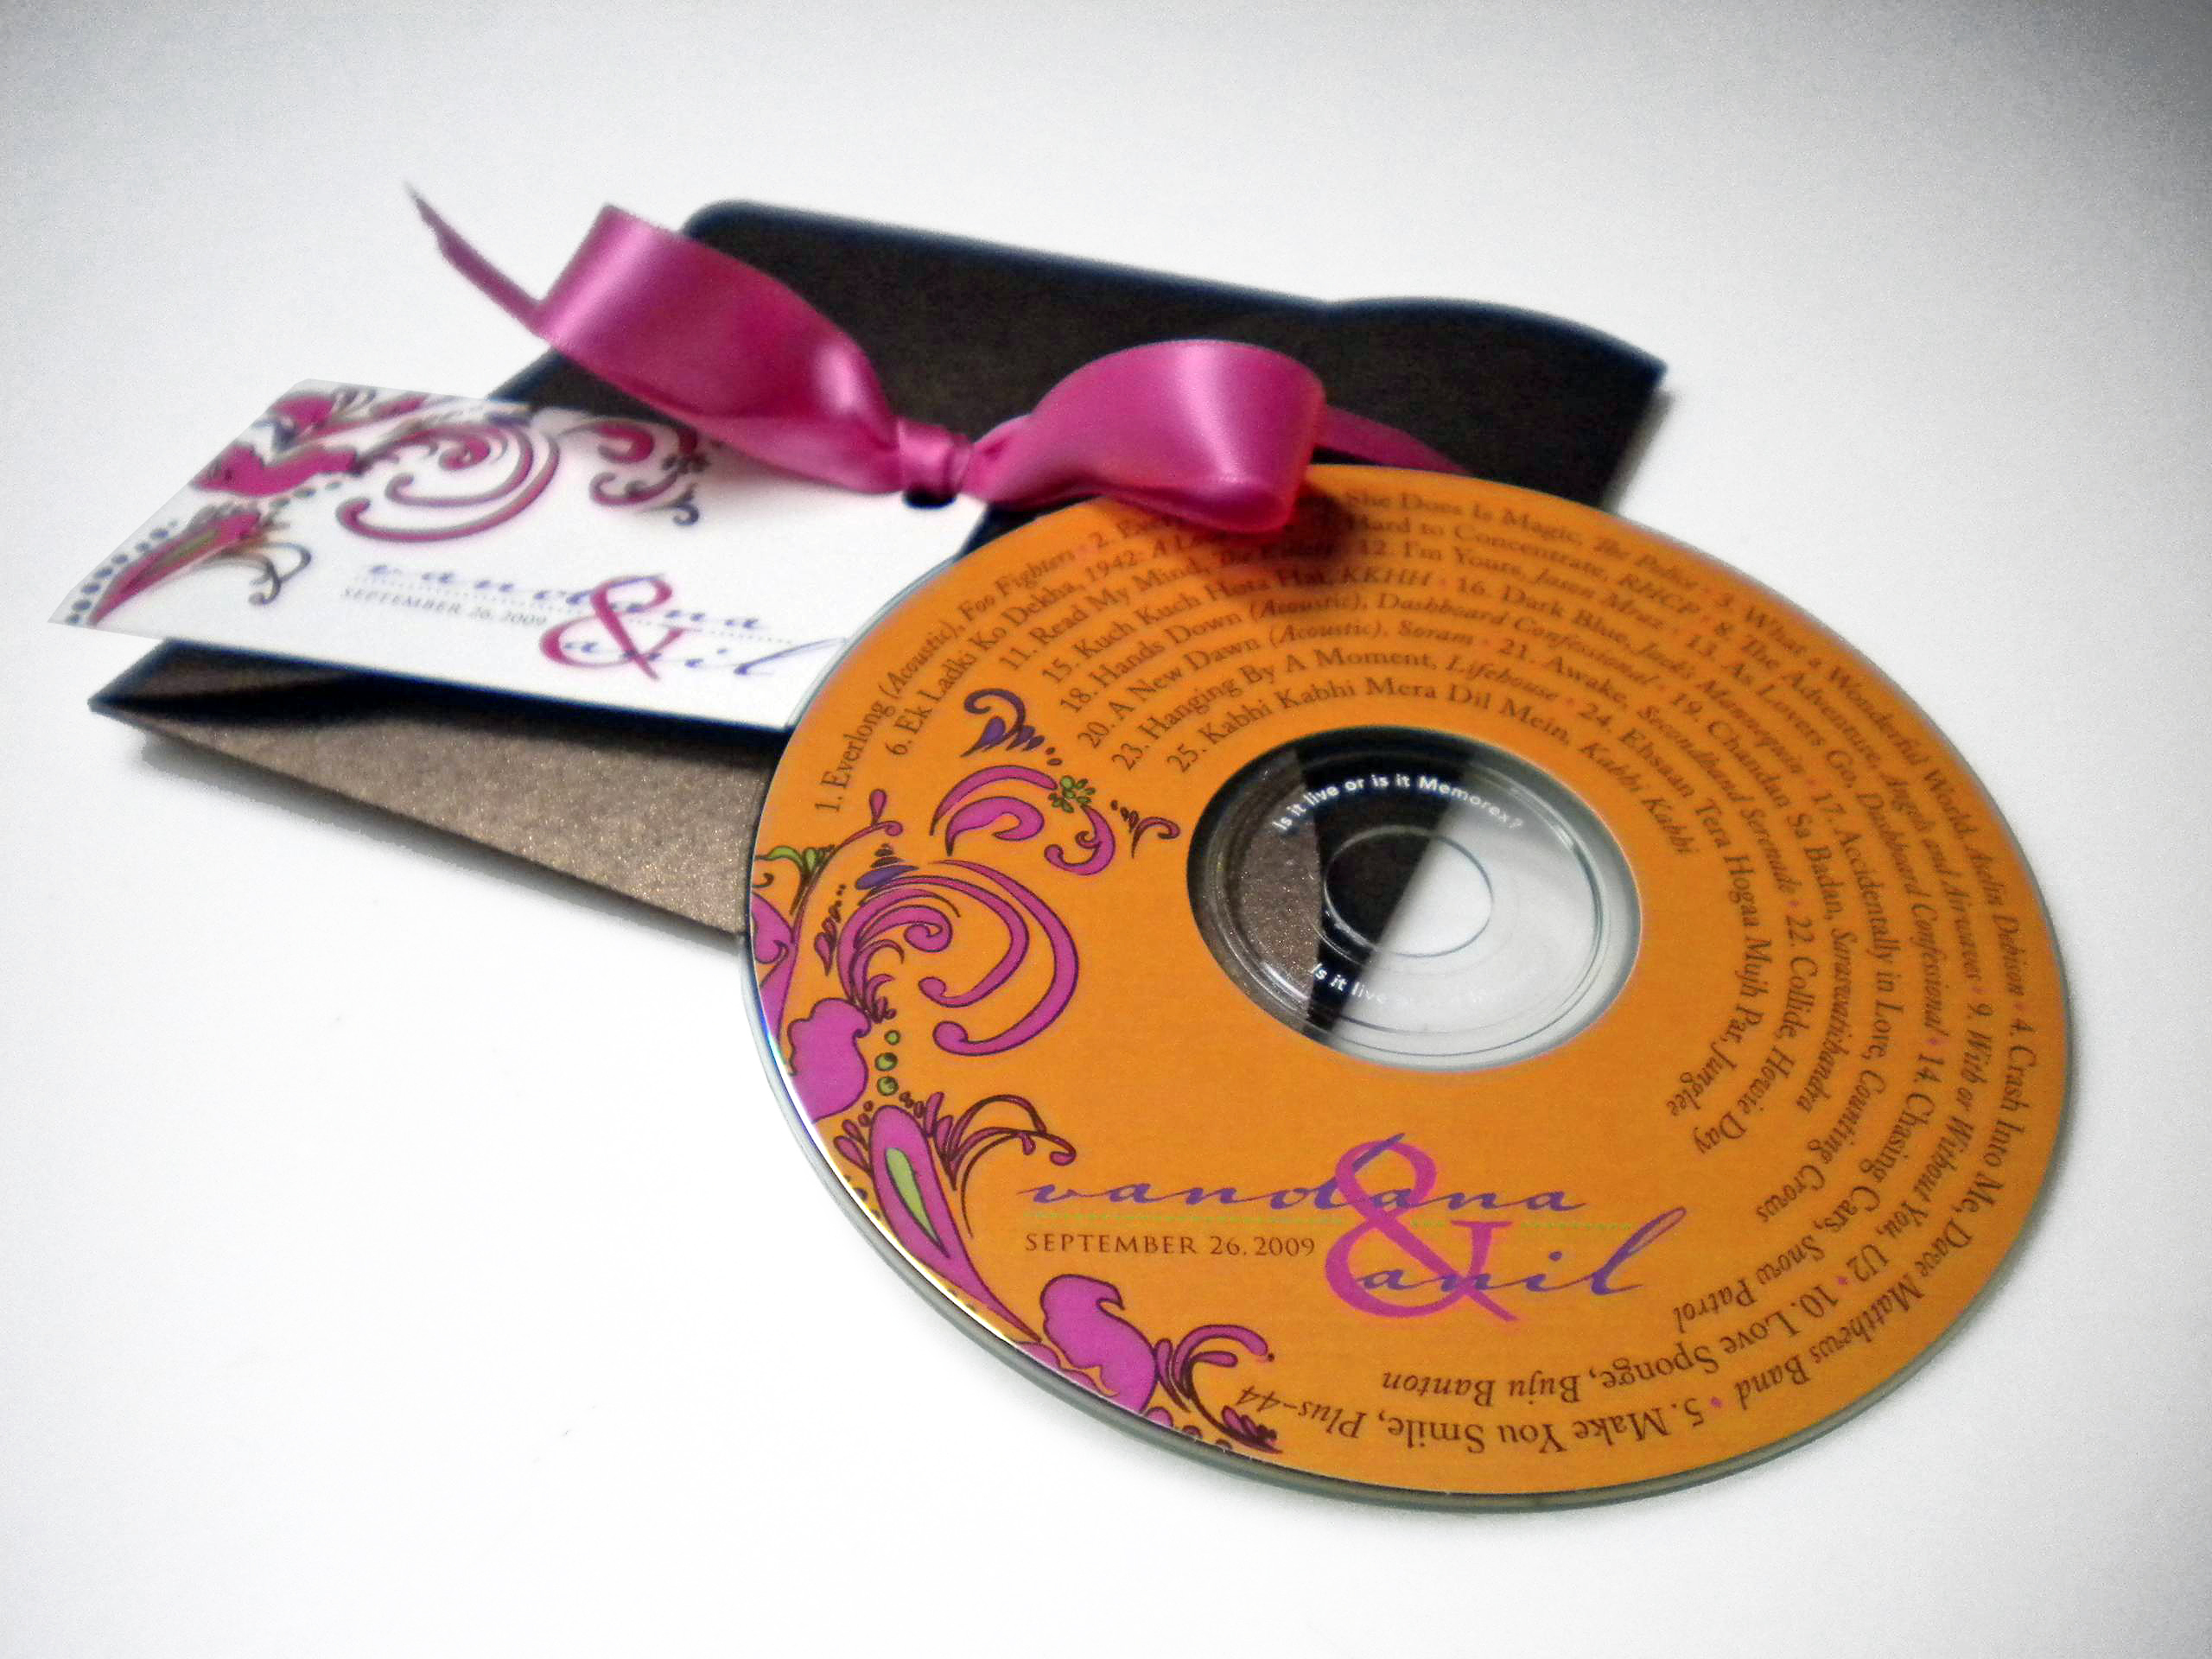 Reception, Flowers & Decor, Favors & Gifts, Stationery, orange, pink, purple, green, brown, gold, favor, Invitations, Wedding, Music, Cd, Ribbon, Tag, Simplyou design